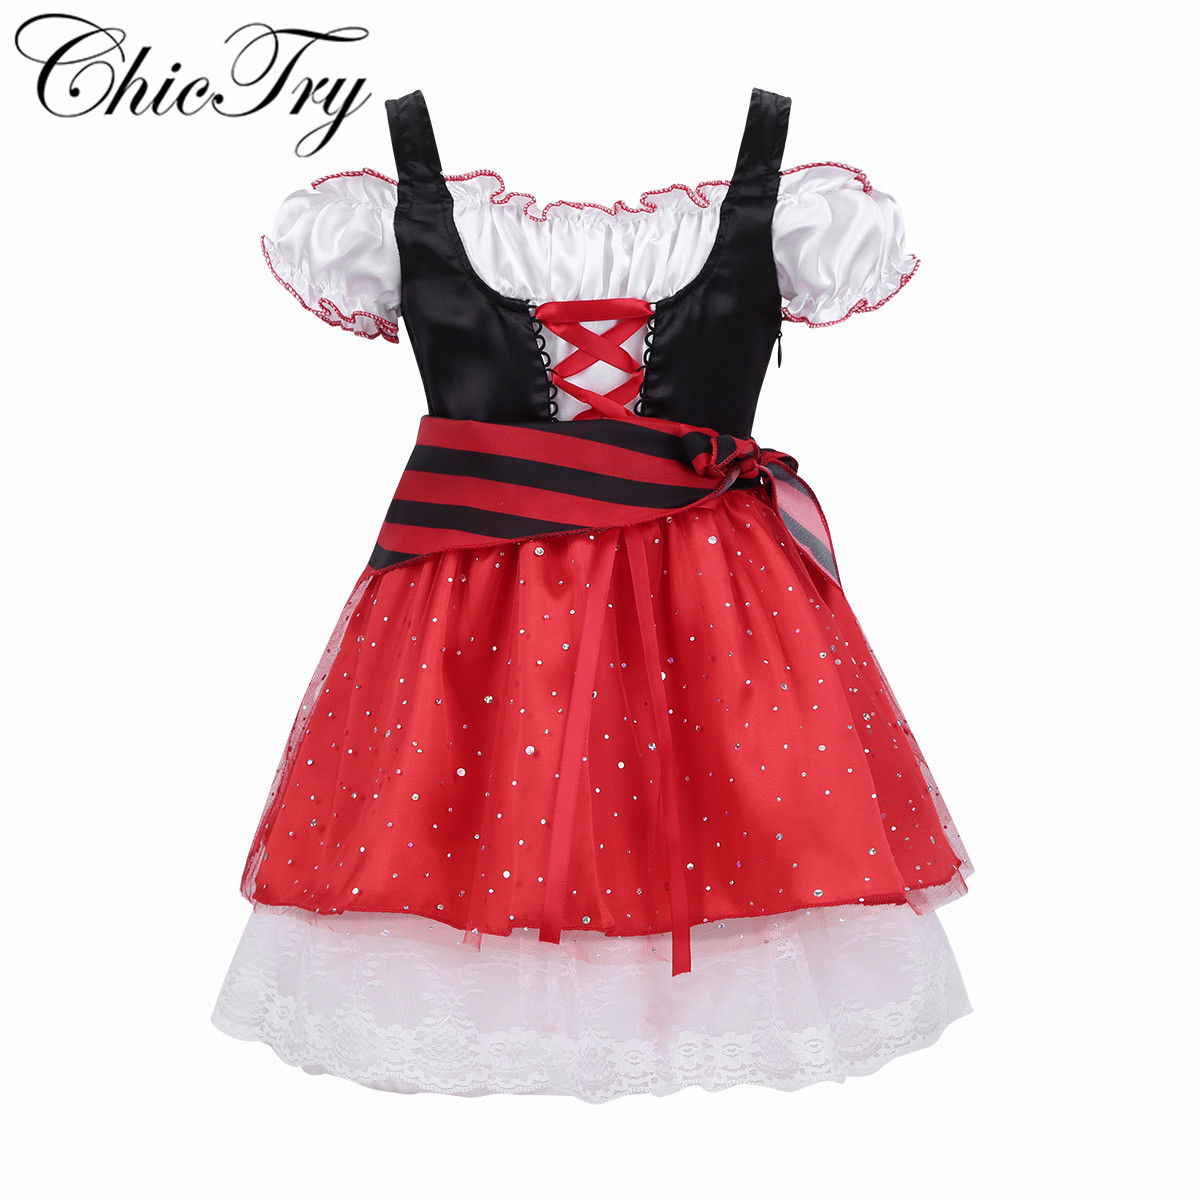 Kids Girls Pirate Costume Dress Glittery Sequins Off Shoulder Elastic Short Sleeves Halloween Cosplay Party Costumes Tutu Dress